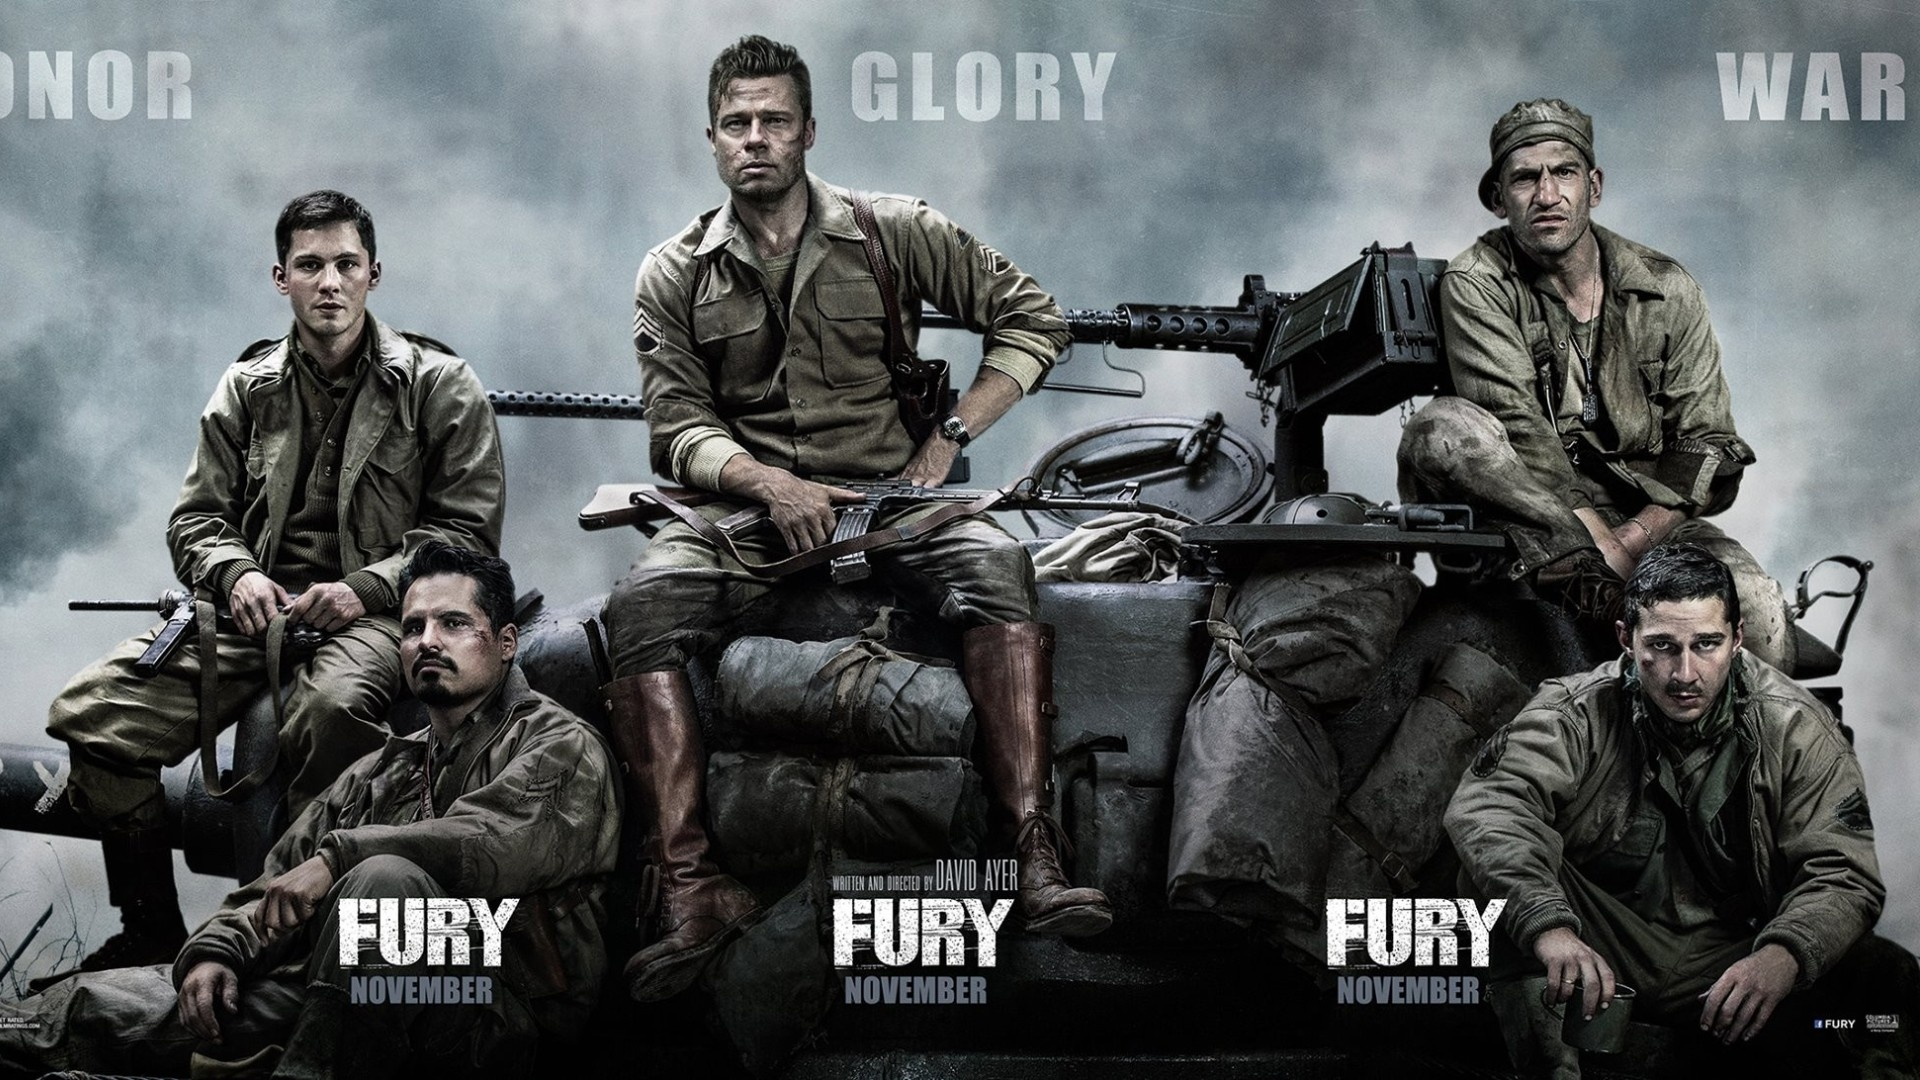 Fury Movie Poster Wallpapers